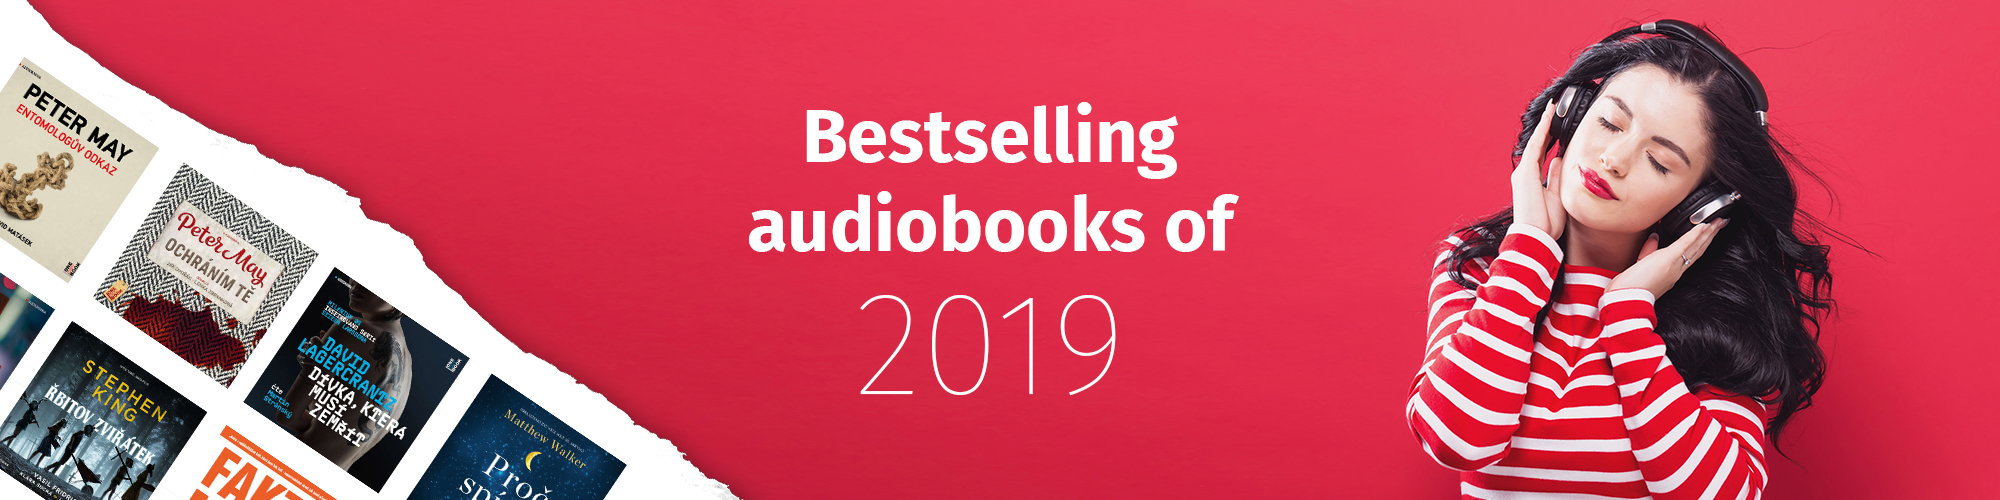 Bestselling Audiobooks of 2019